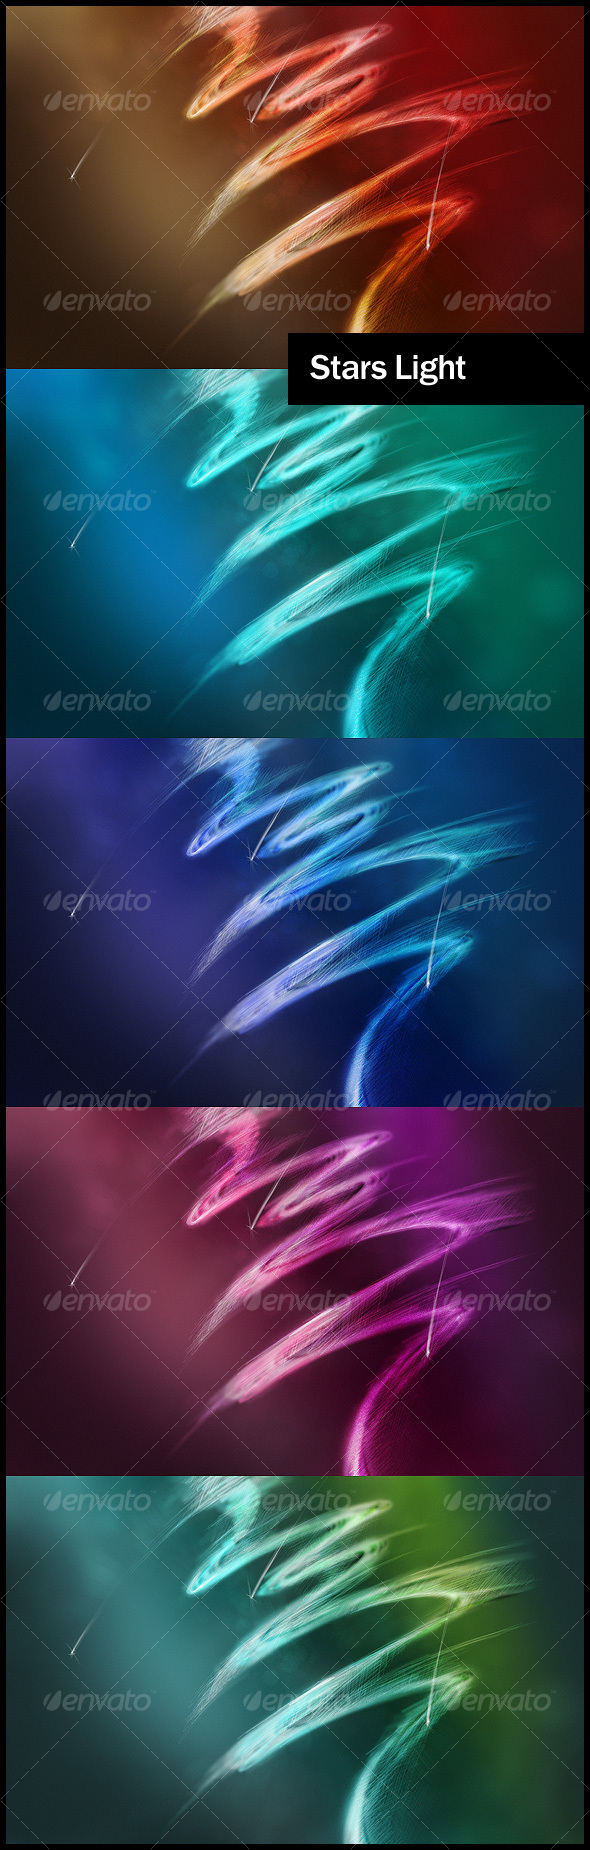 Stars Light Theme Backgrounds - Abstract Backgrounds